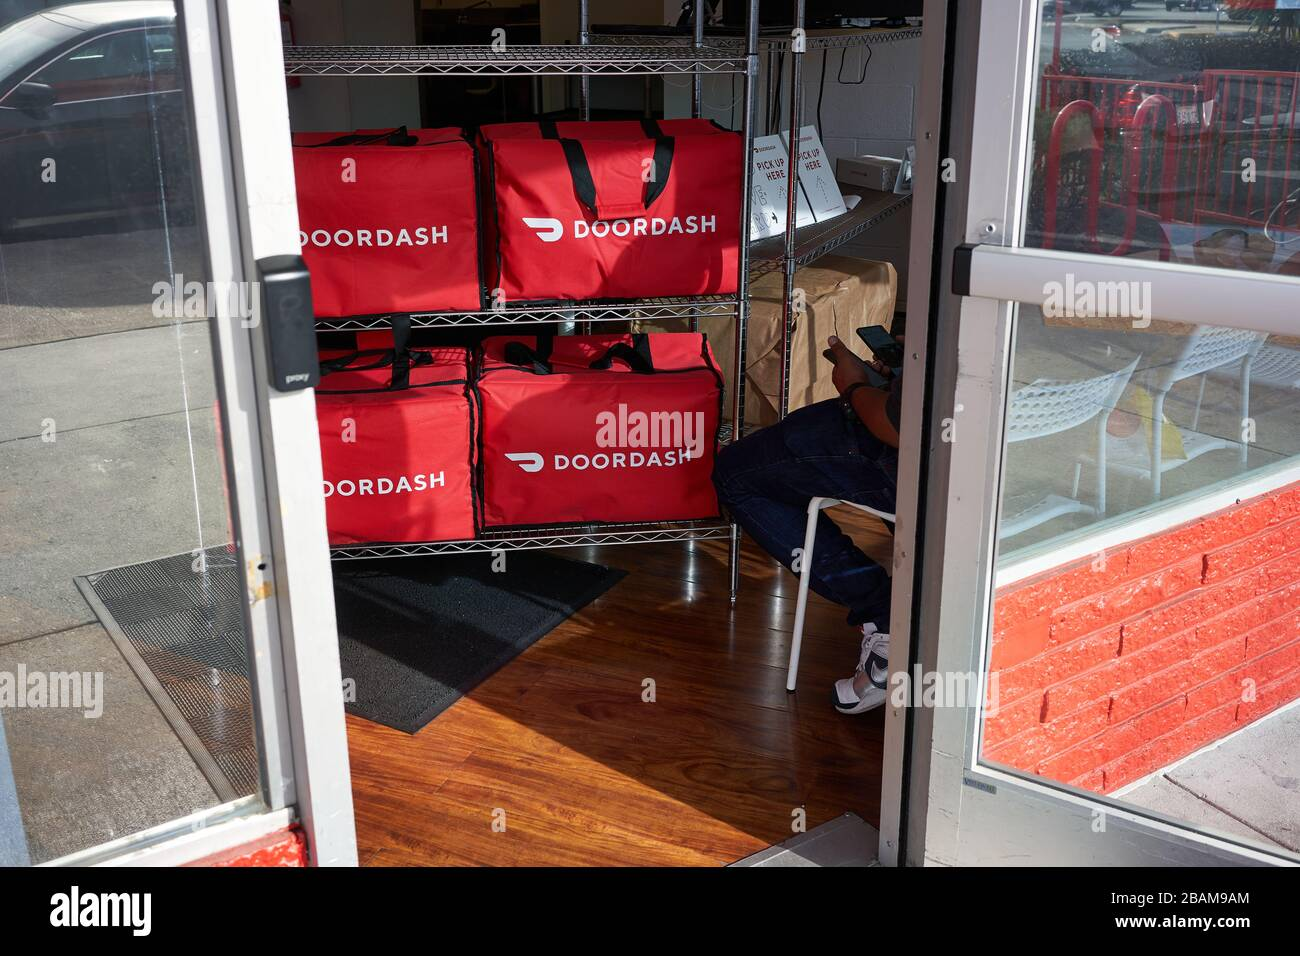 A DoorDash delivery worker checks his phones at the DoorDash Kitchens location in Redwood City, California. Stock Photo